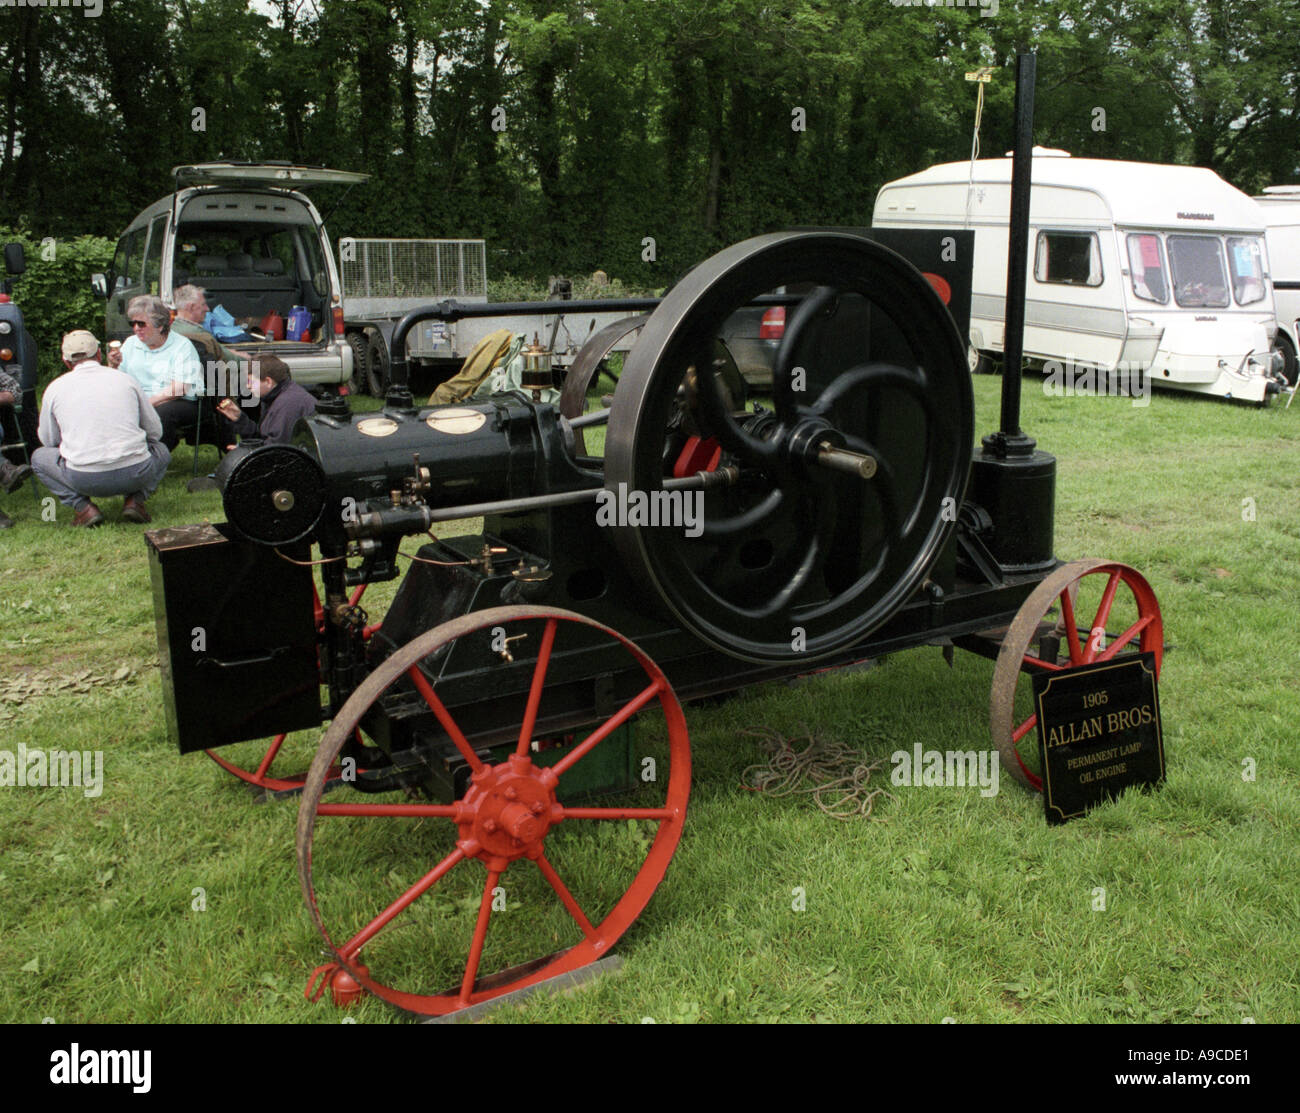 1907 Allan oil engine 6 horse power hp - Stock Image